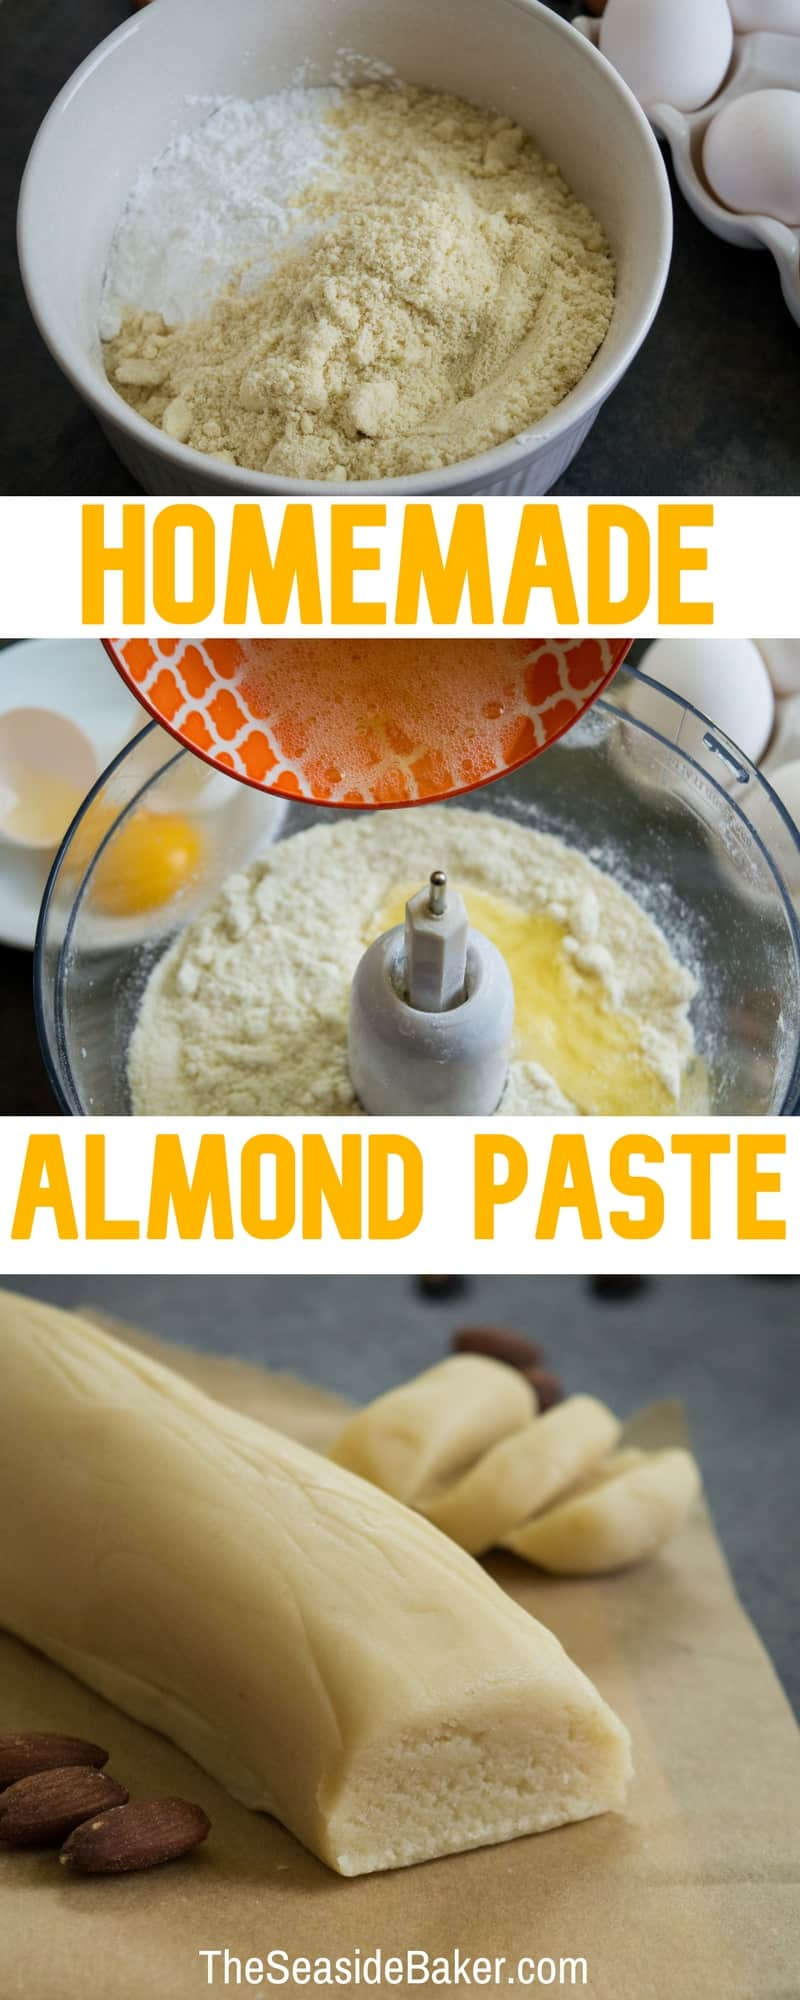 Homemade Almond Paste - This can be made in about 5 minutes for half the cost of store-bought! | #TheSeasideBaker #almondpaste #cookierecipes | See this and other delicious recipes at TheSeasideBaker.com